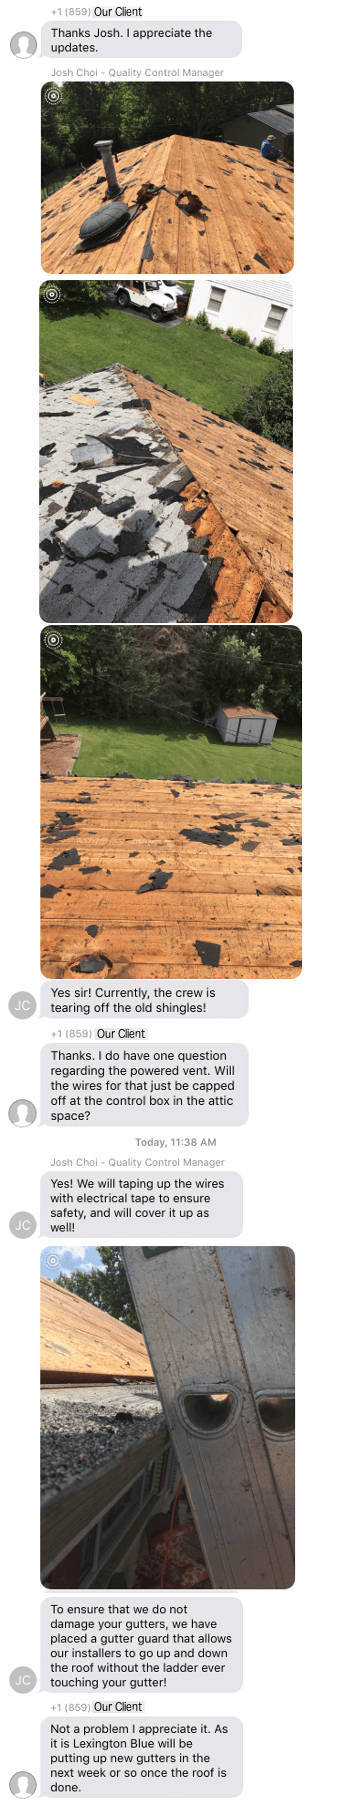 text message roofing progress report for client